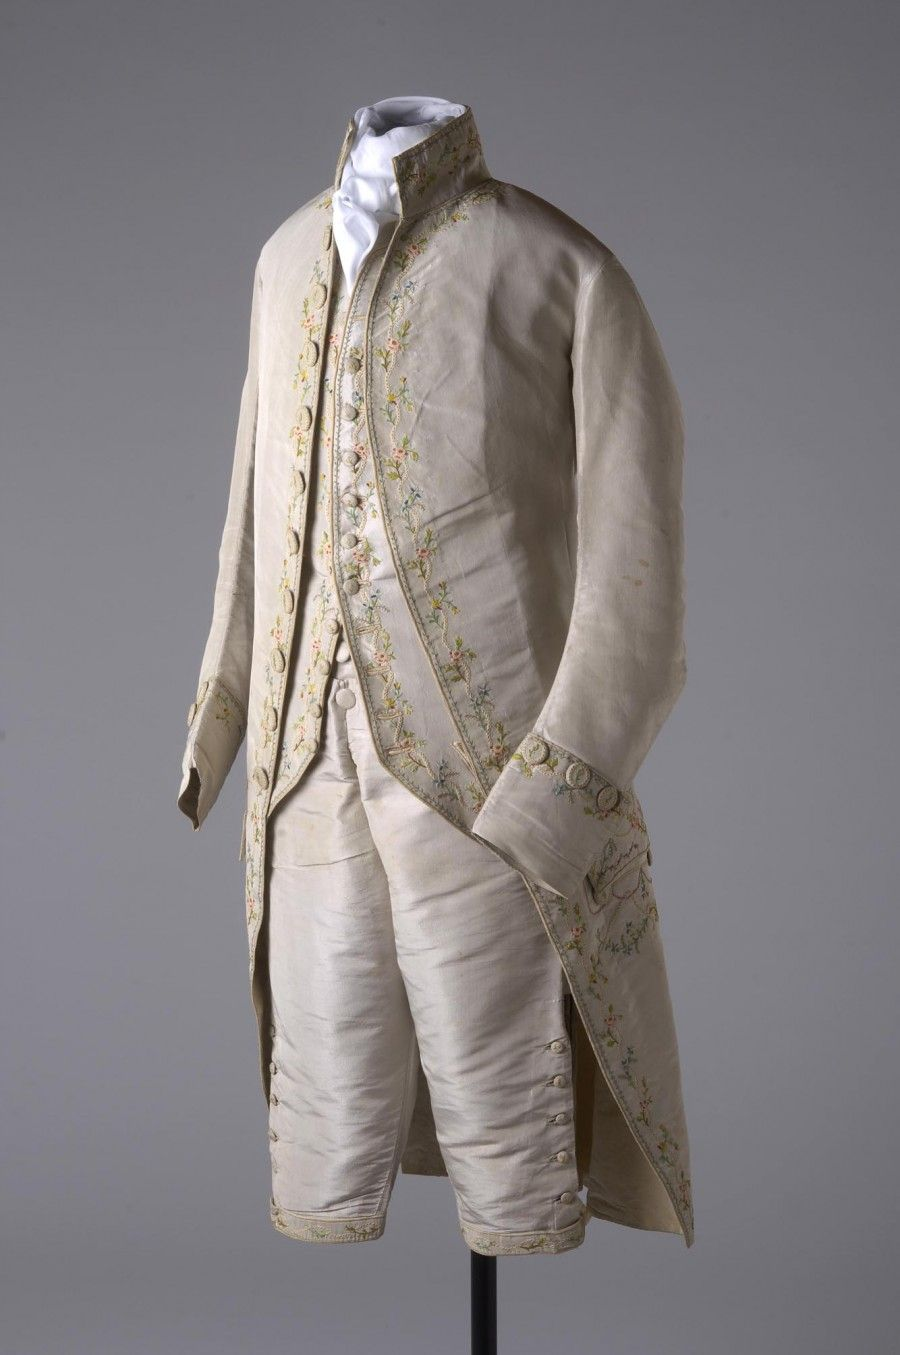 3-piece suit, Great Britain, 1780-1788. Grey silk, tambour embroidered on knee bands and buttons in pink, red, blue, yellow, green, brown and cream coloured silks, fronts lined with ivory silk in scrolling floral motifs.